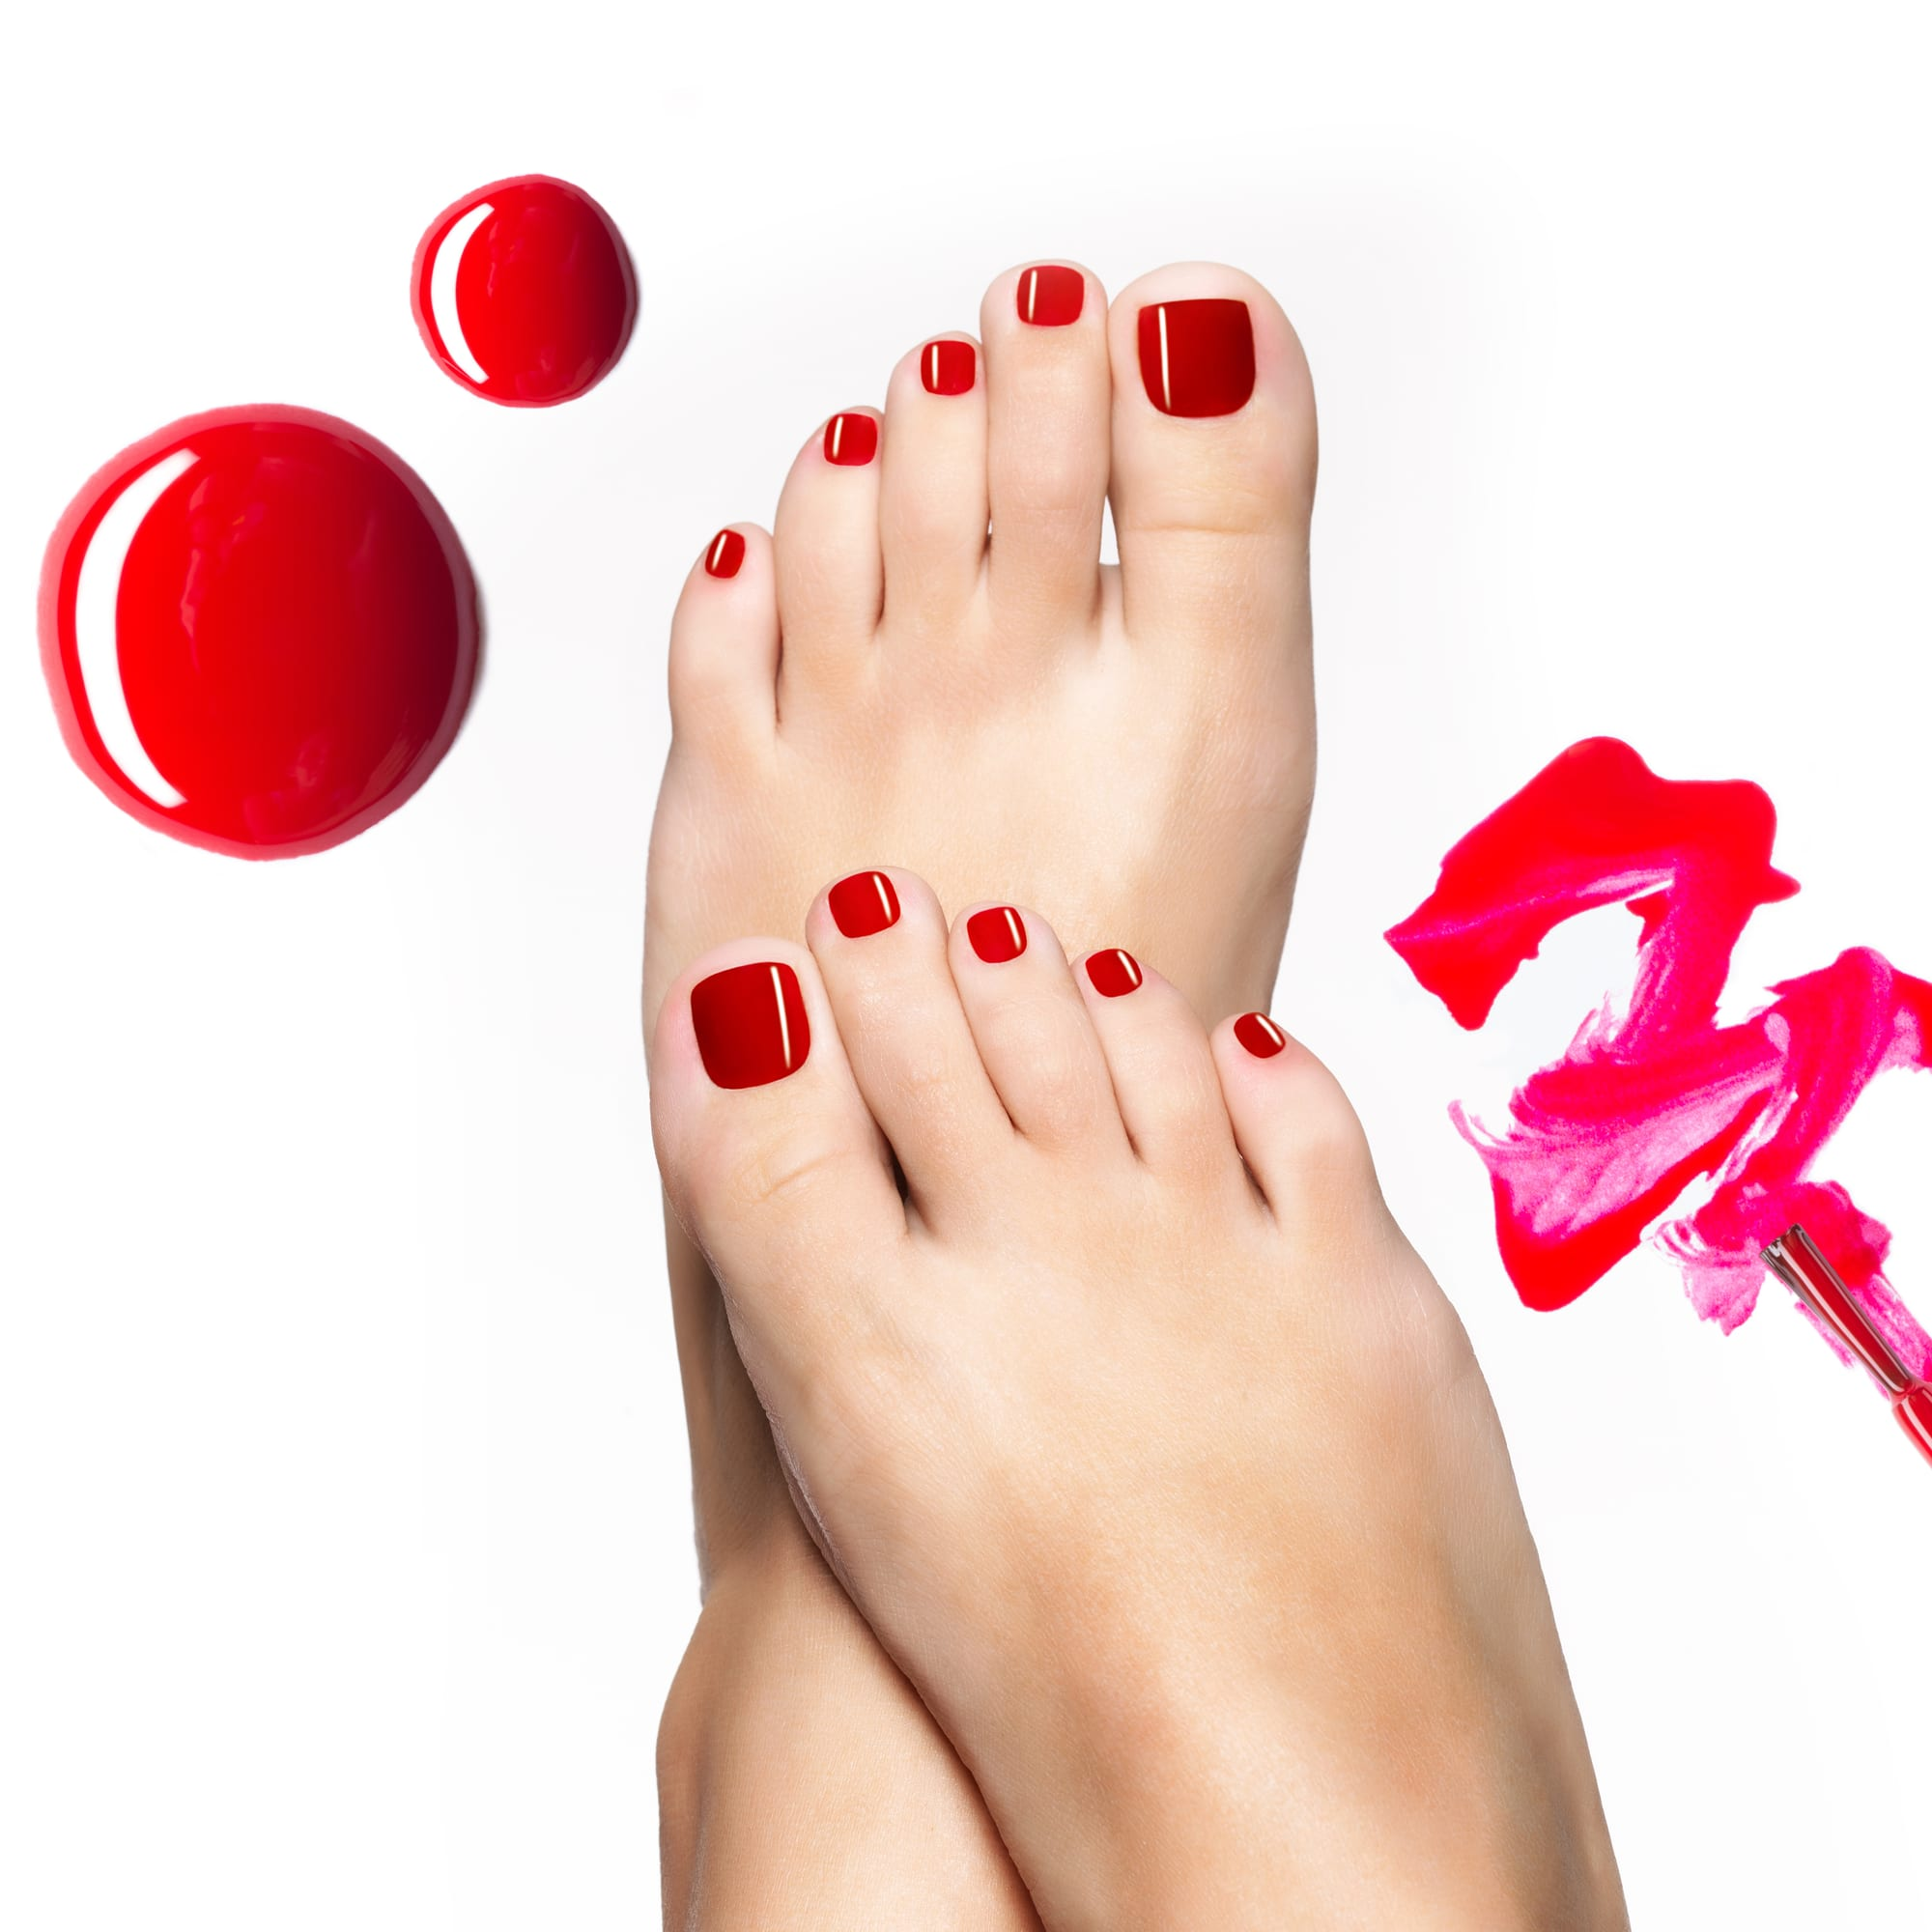 T Spa And Nail Supply: Vargas Classic Pedicure